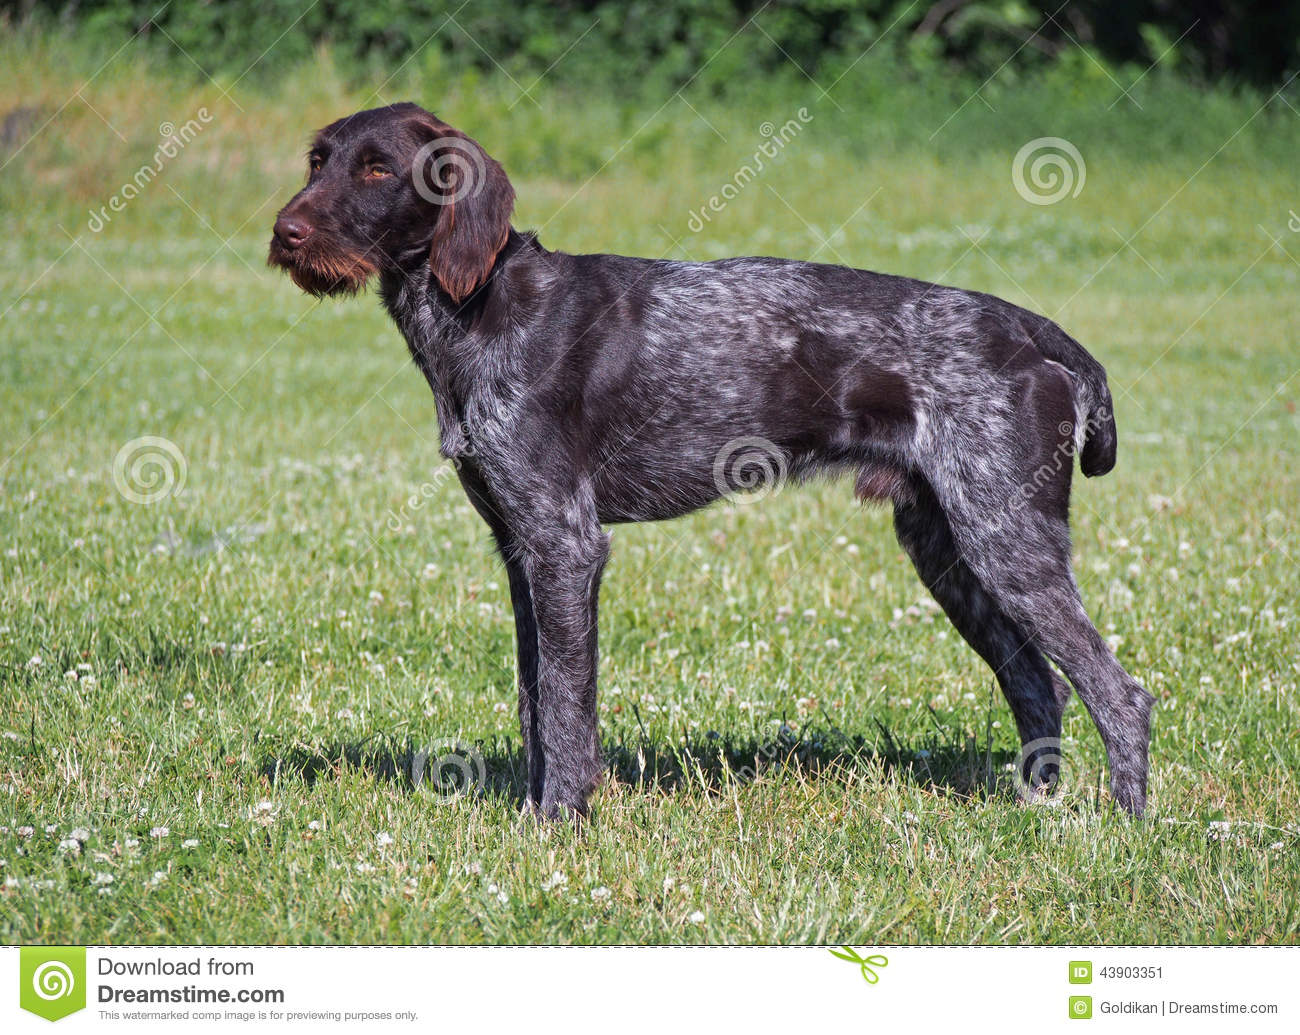 The drahthaar dog stock image. Image of outdoors, hair - 43903351